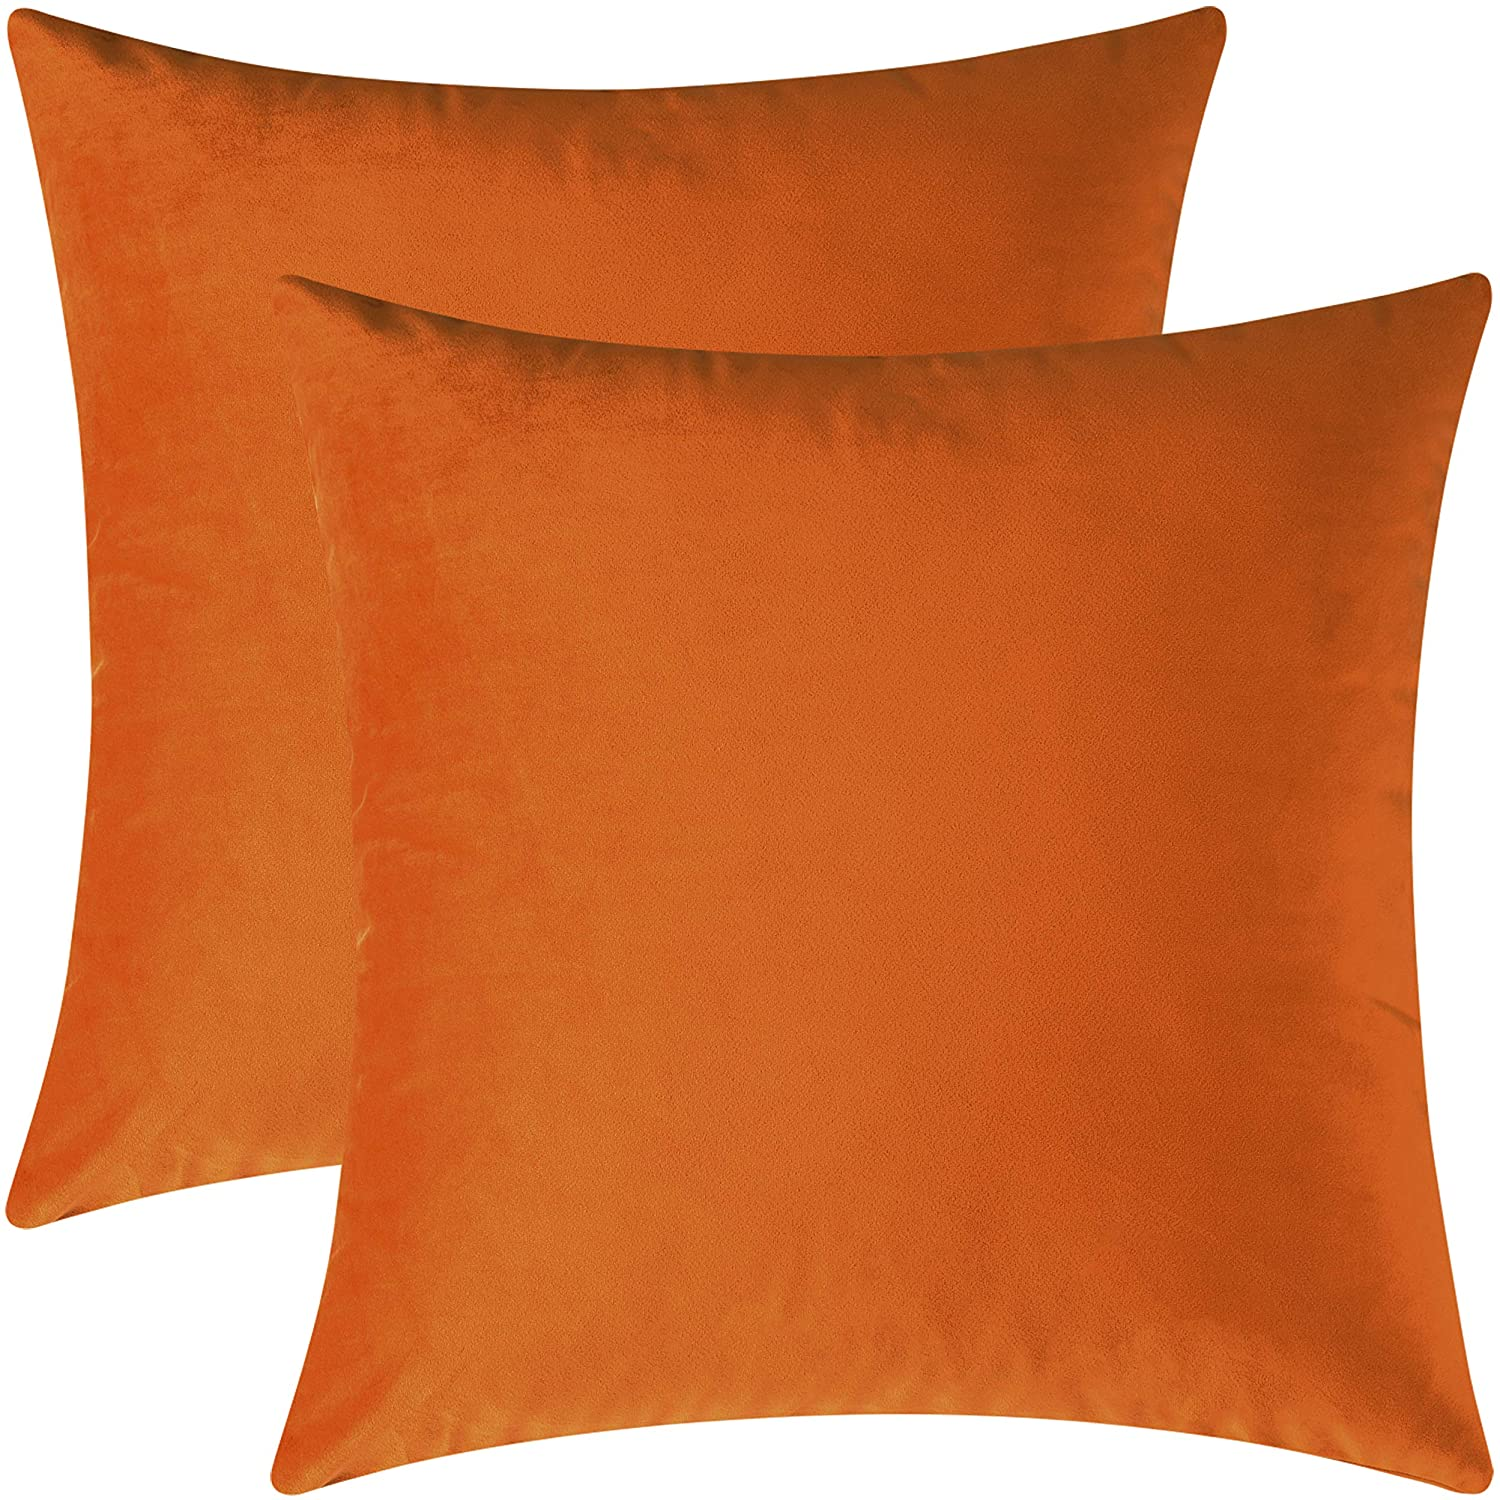 Ranking TOP6 Mixhug Decorative Throw Pillow Velvet Covers Max 89% OFF So Cushion